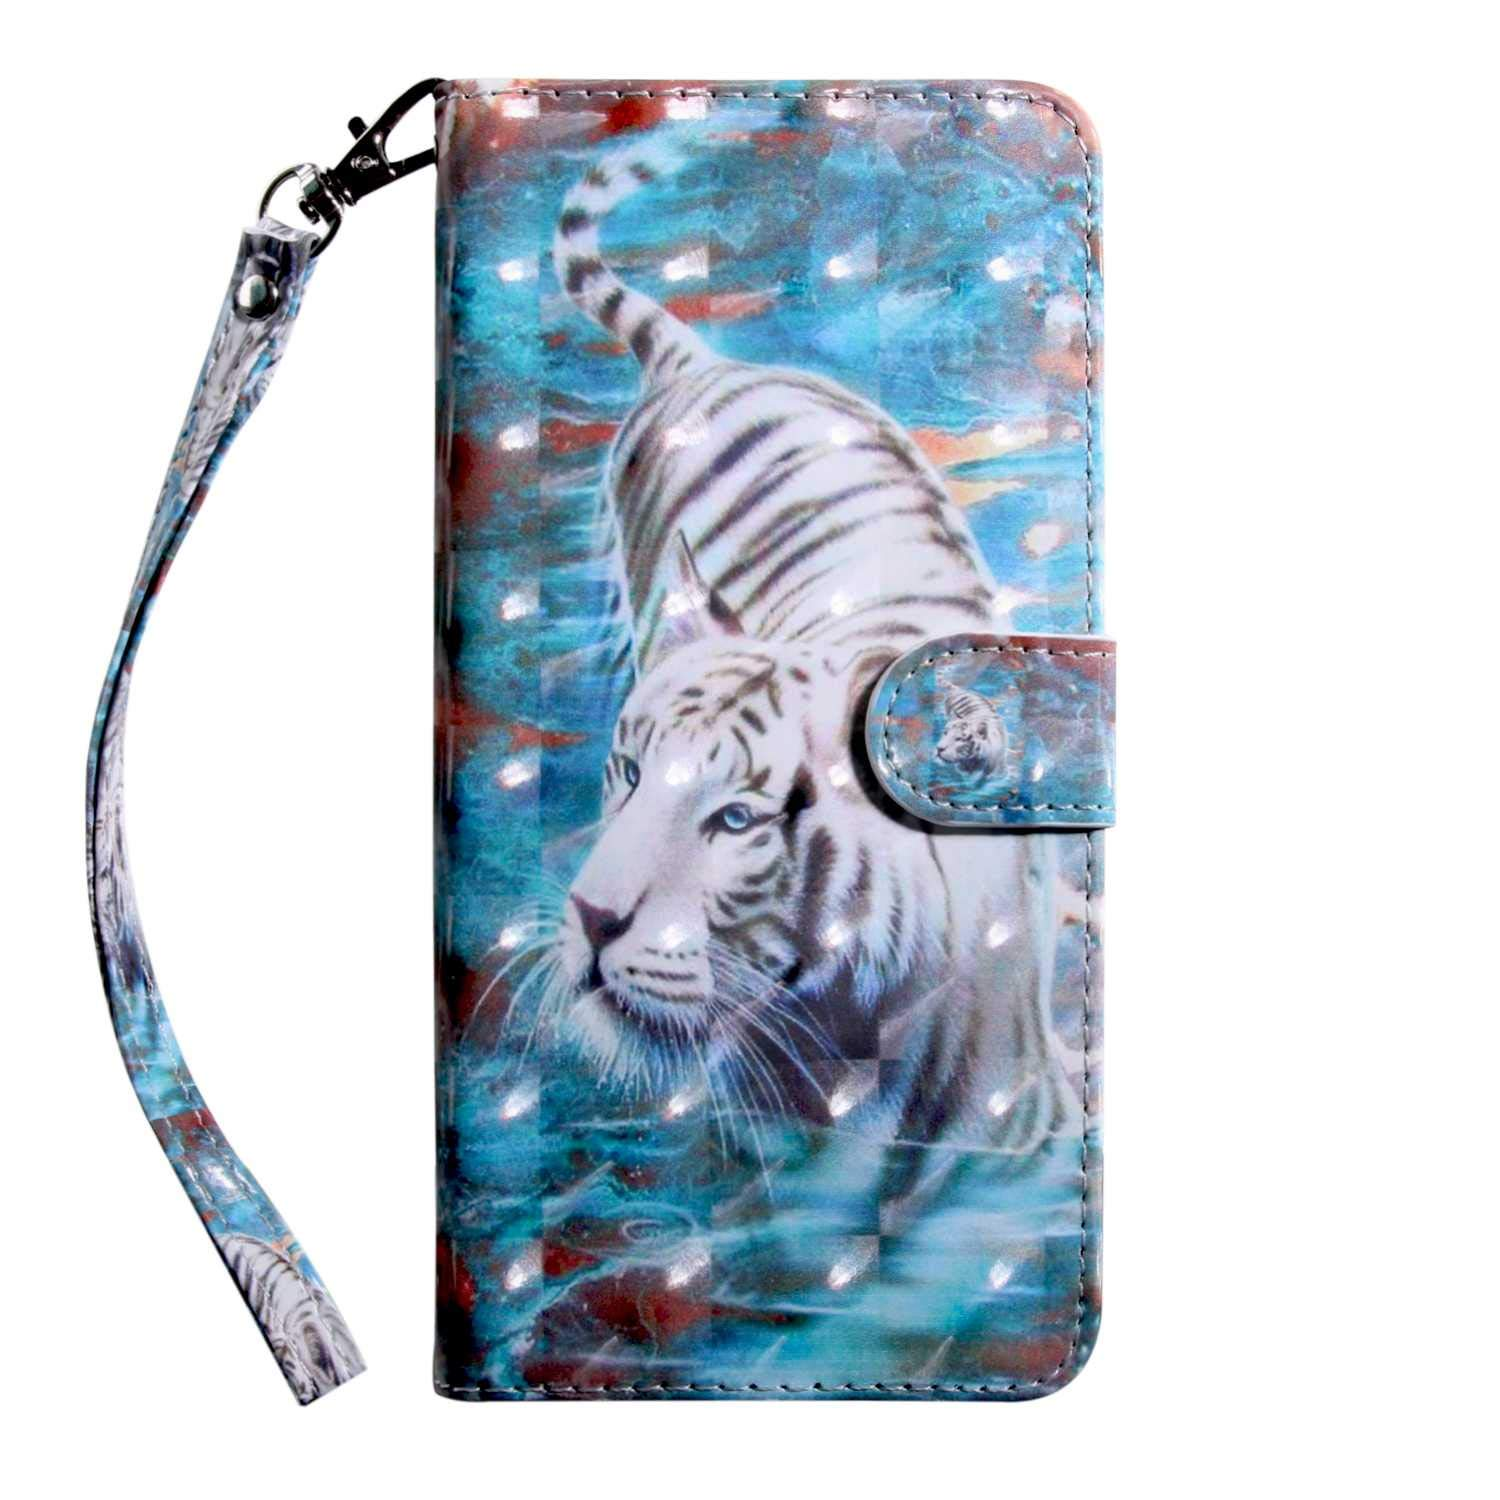 Xiaomi MI 5X Case CUSKING Magnetic Wallet Case for Xiaomi MI 5X [Card Slot] [Hand Strap] [Flip Case] [Easy to Clean] Full Body Proective Case - Blue, Tiger